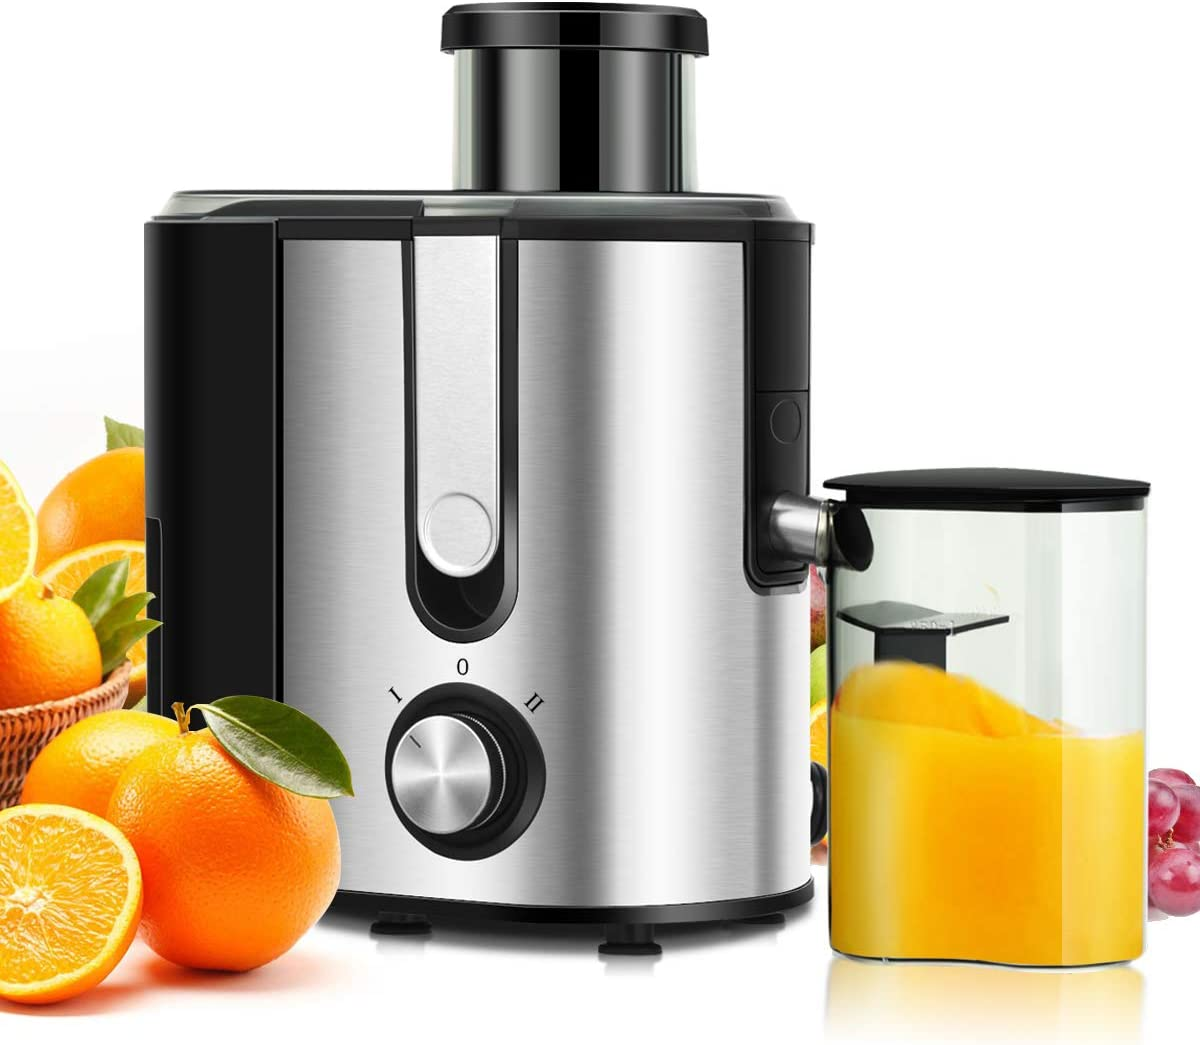 COSTWAY Juicer Machines with 2.5inch Wide Mouth, 400W Masticating Juicer Extractor with Dual Speed Control and Overload Protection, Stainless Steel Centrifugal Juicer with Anti-drip Design, BPA-FREE, Easy to Clean